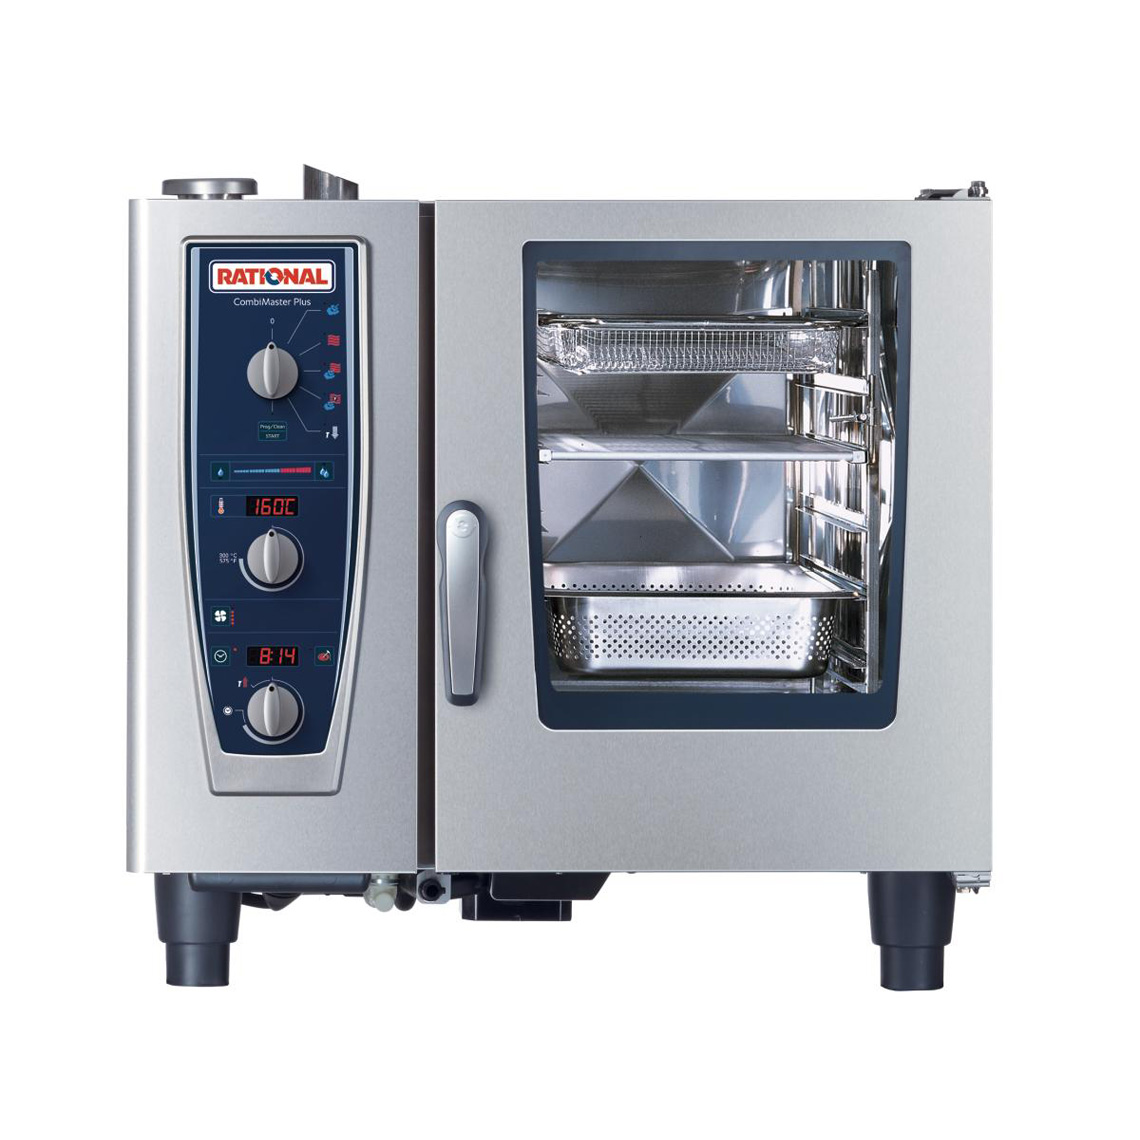 RATIONAL B619206.27E202 combi oven, gas